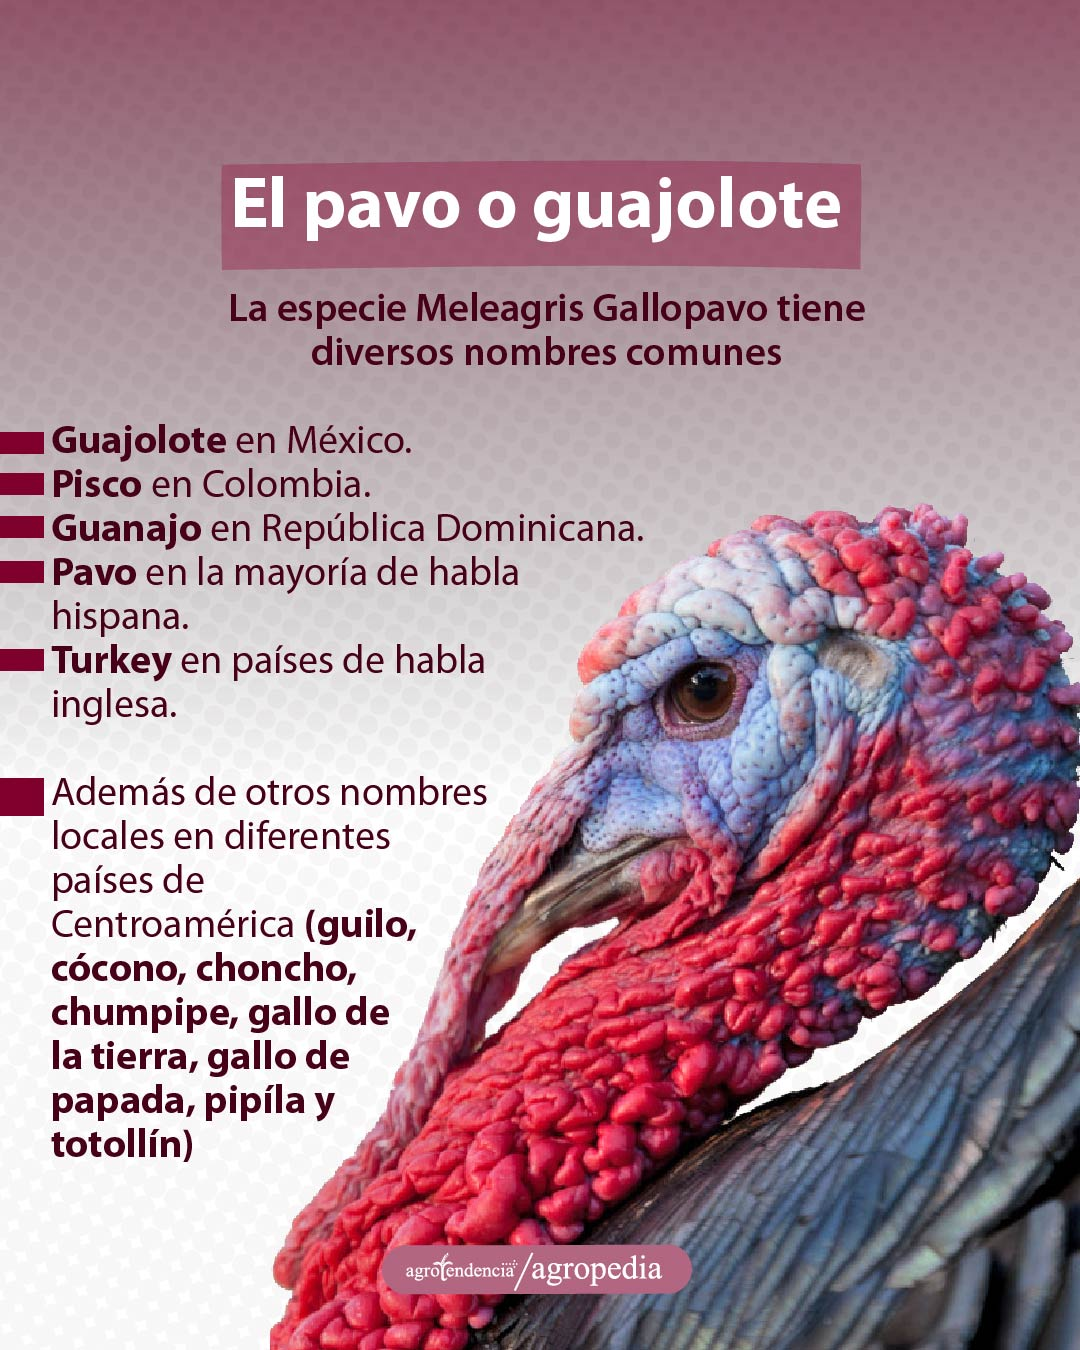 Meleagris Gallopavo